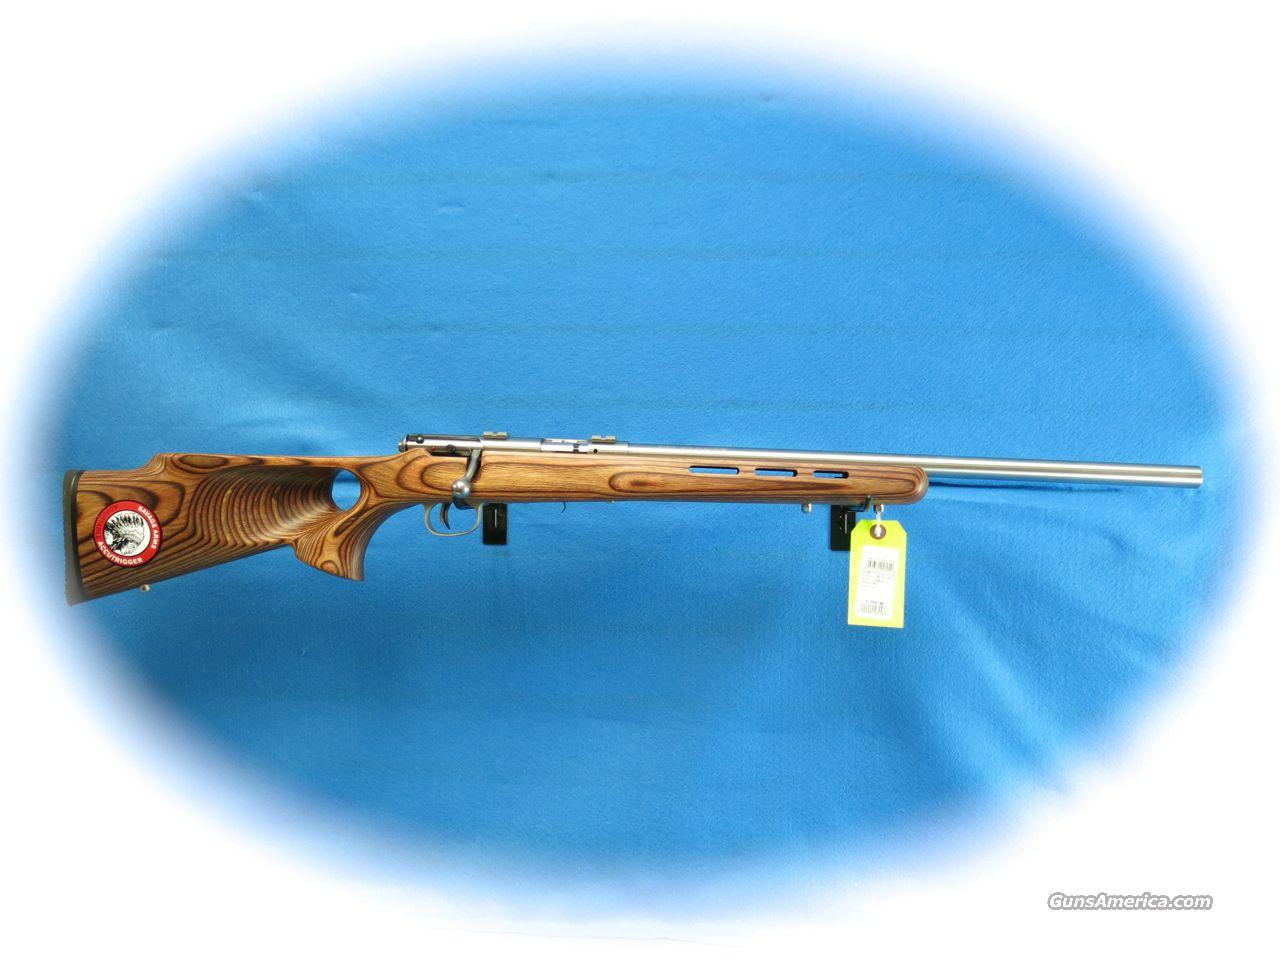 **SALE!!** Savage Arms Mark II BTVS .22LR Bolt Action Rifle **New**  Guns > Rifles > Savage Rifles > Accutrigger Models > Sporting